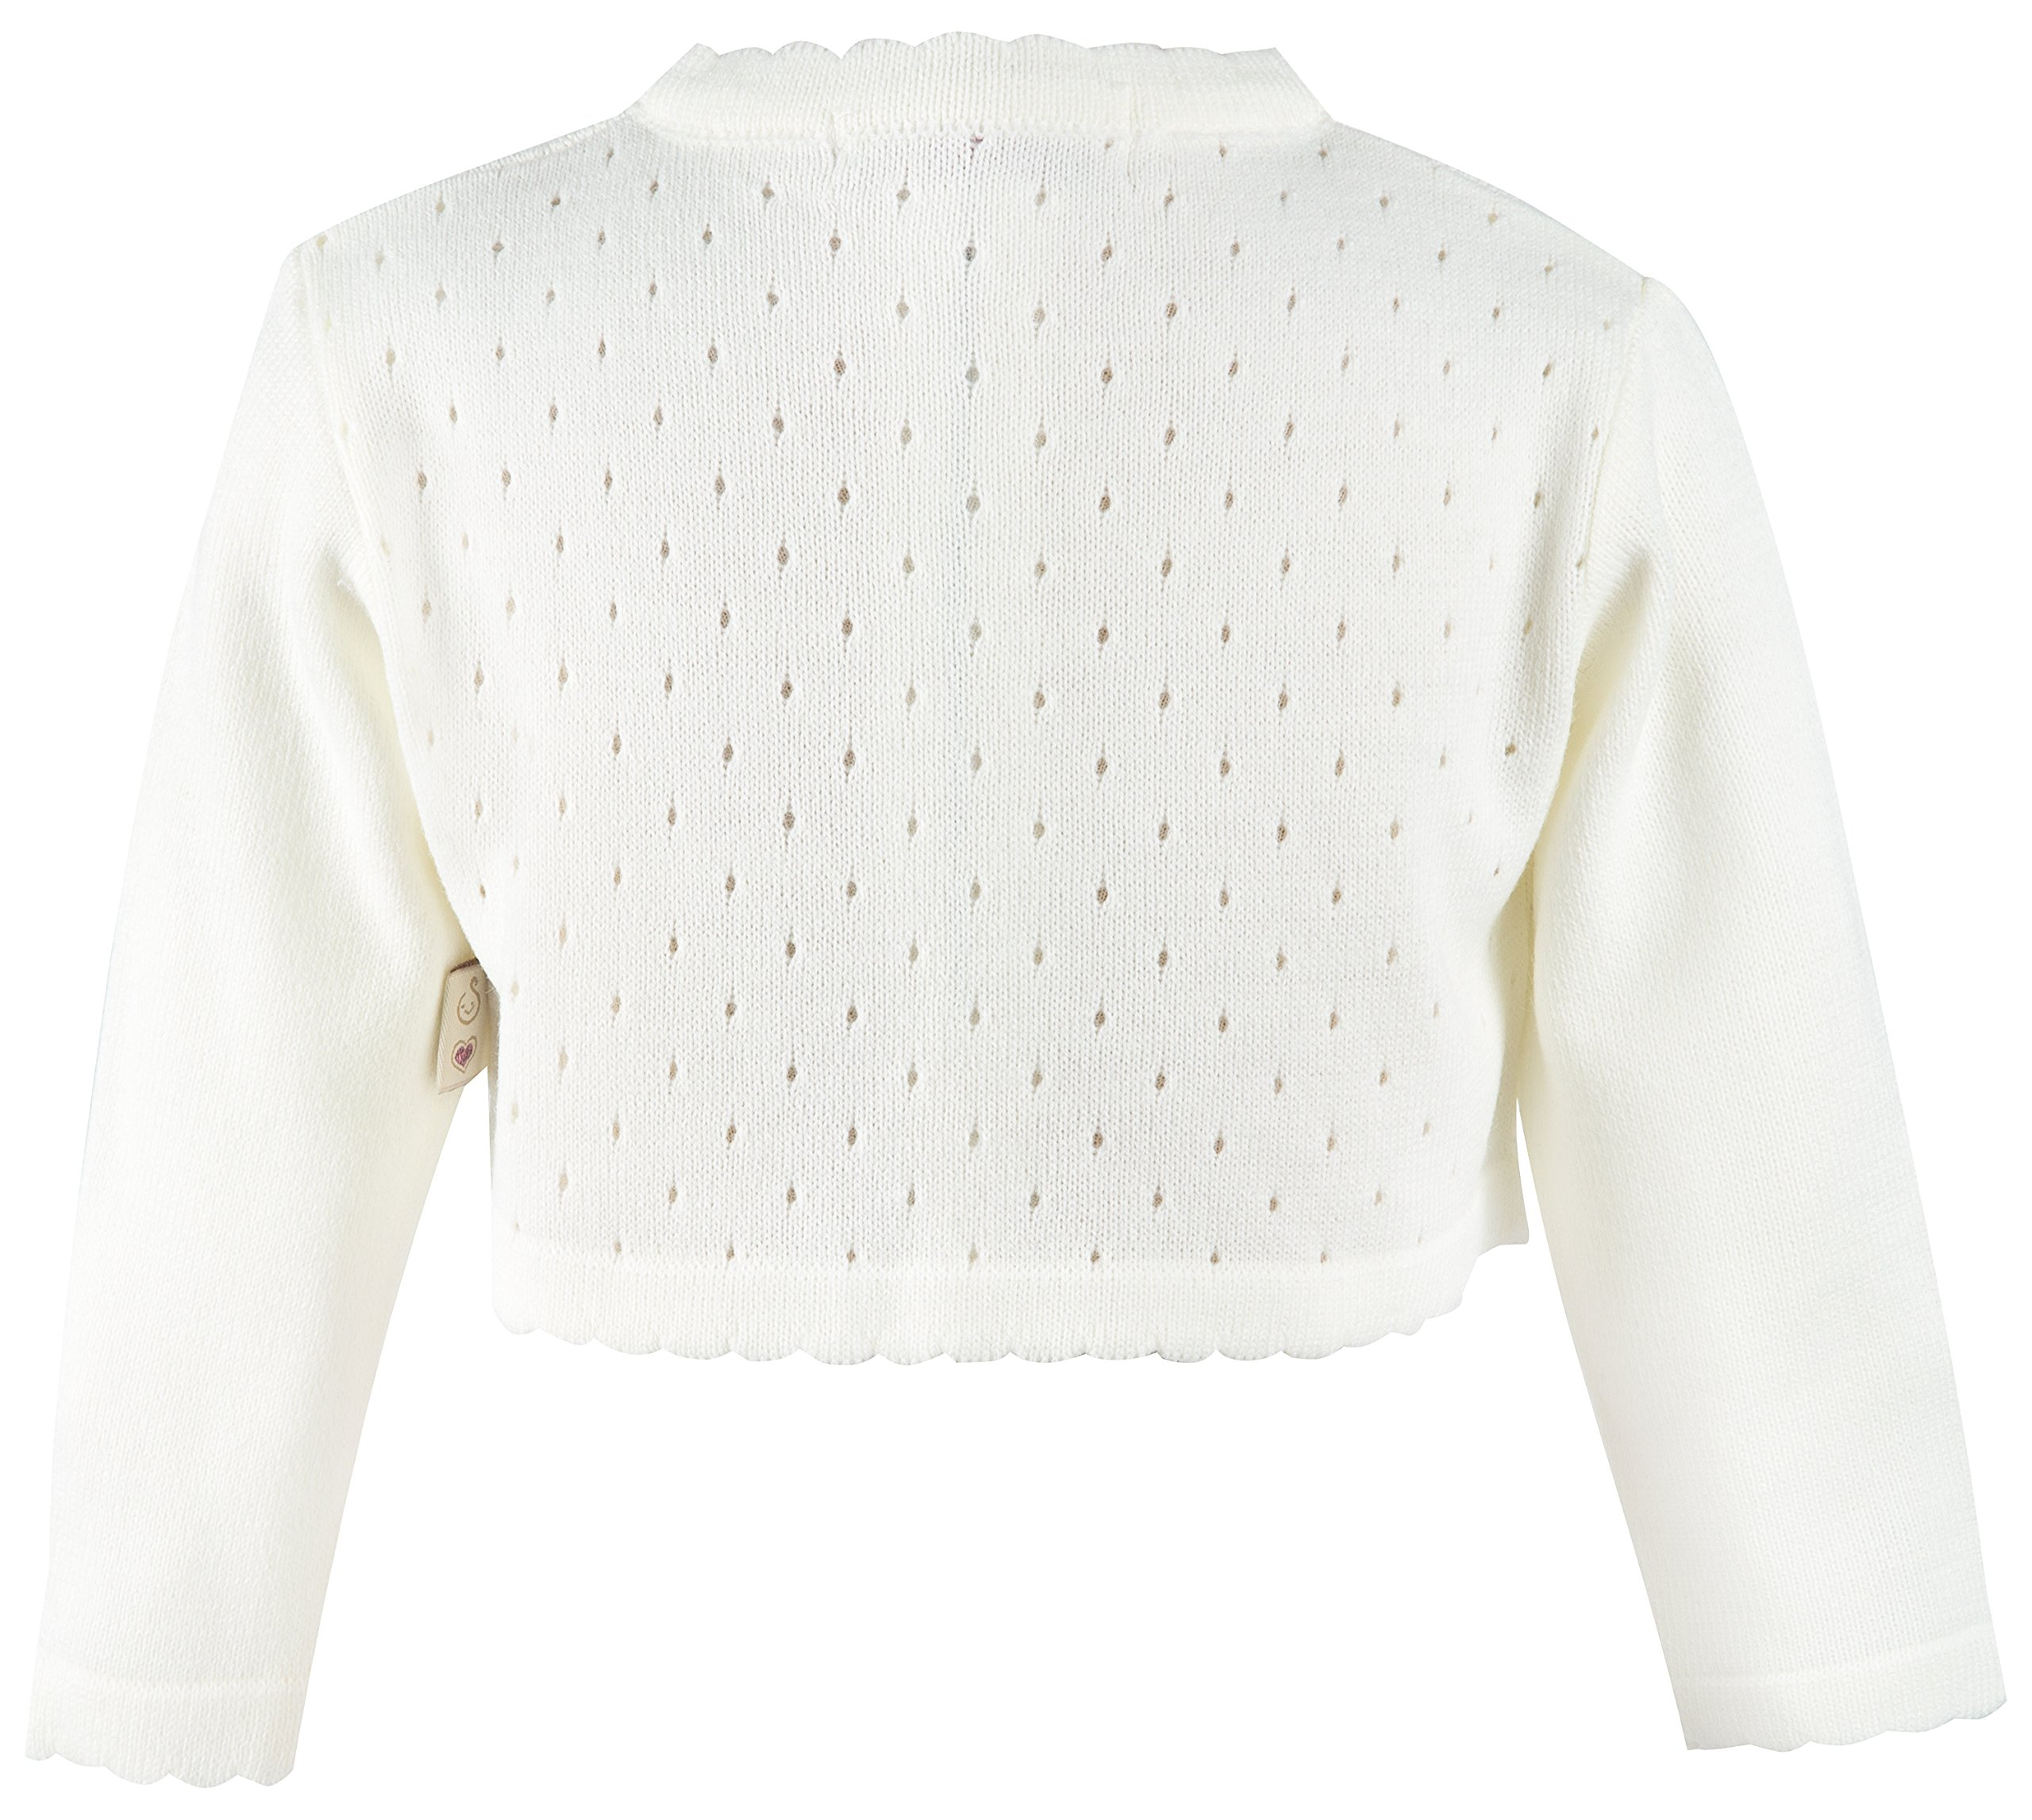 Lilax Little Girls' Knit Long Sleeve One Button Closure Bolero Shrug 9 Cream by Lilax (Image #2)